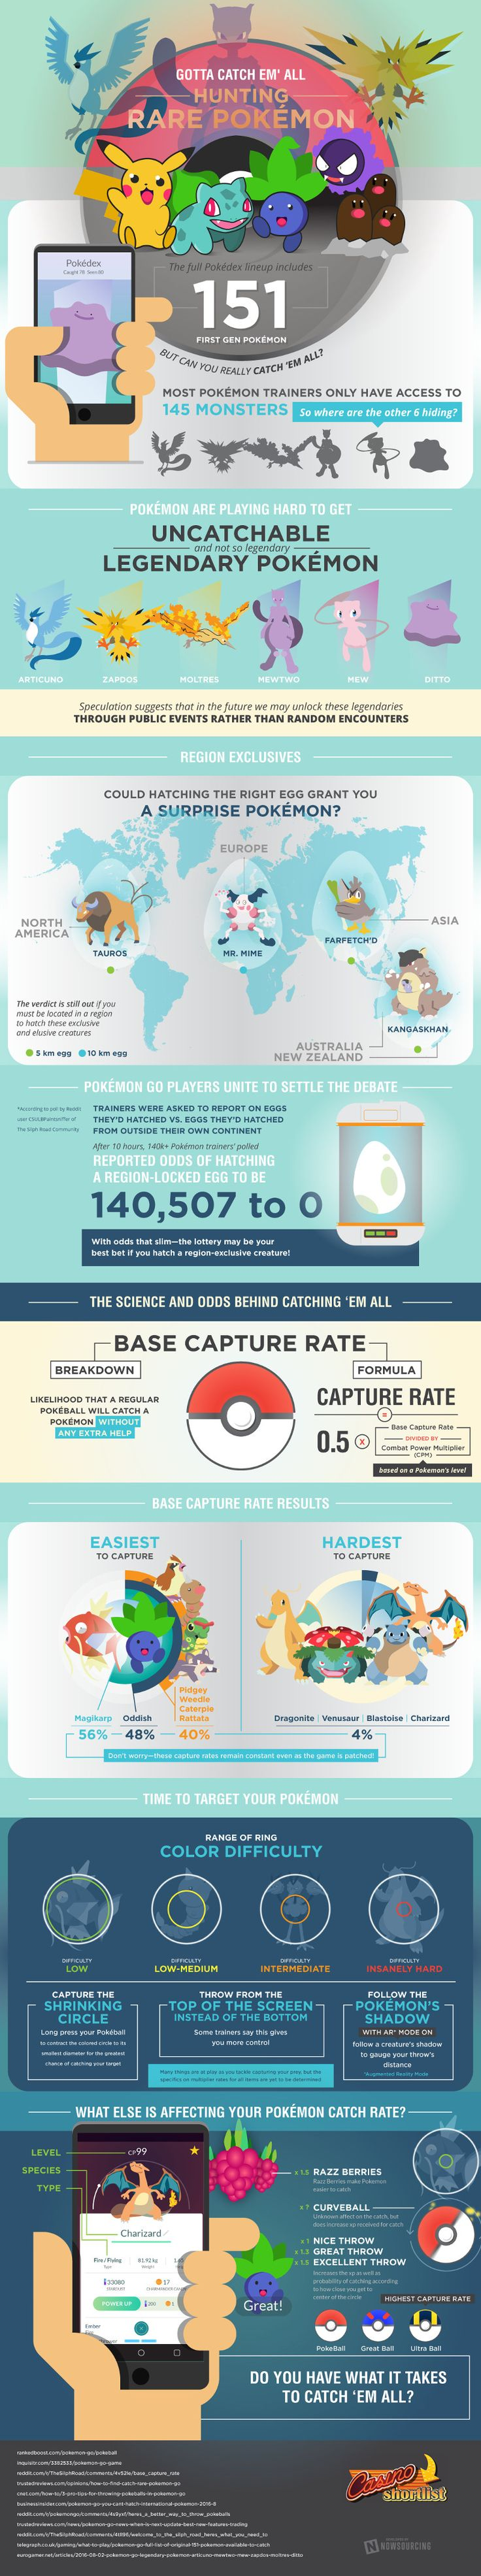 How To Find Rare And Legendary Monsters In Pokemon GO [Infographic] | Lifehacker Australia